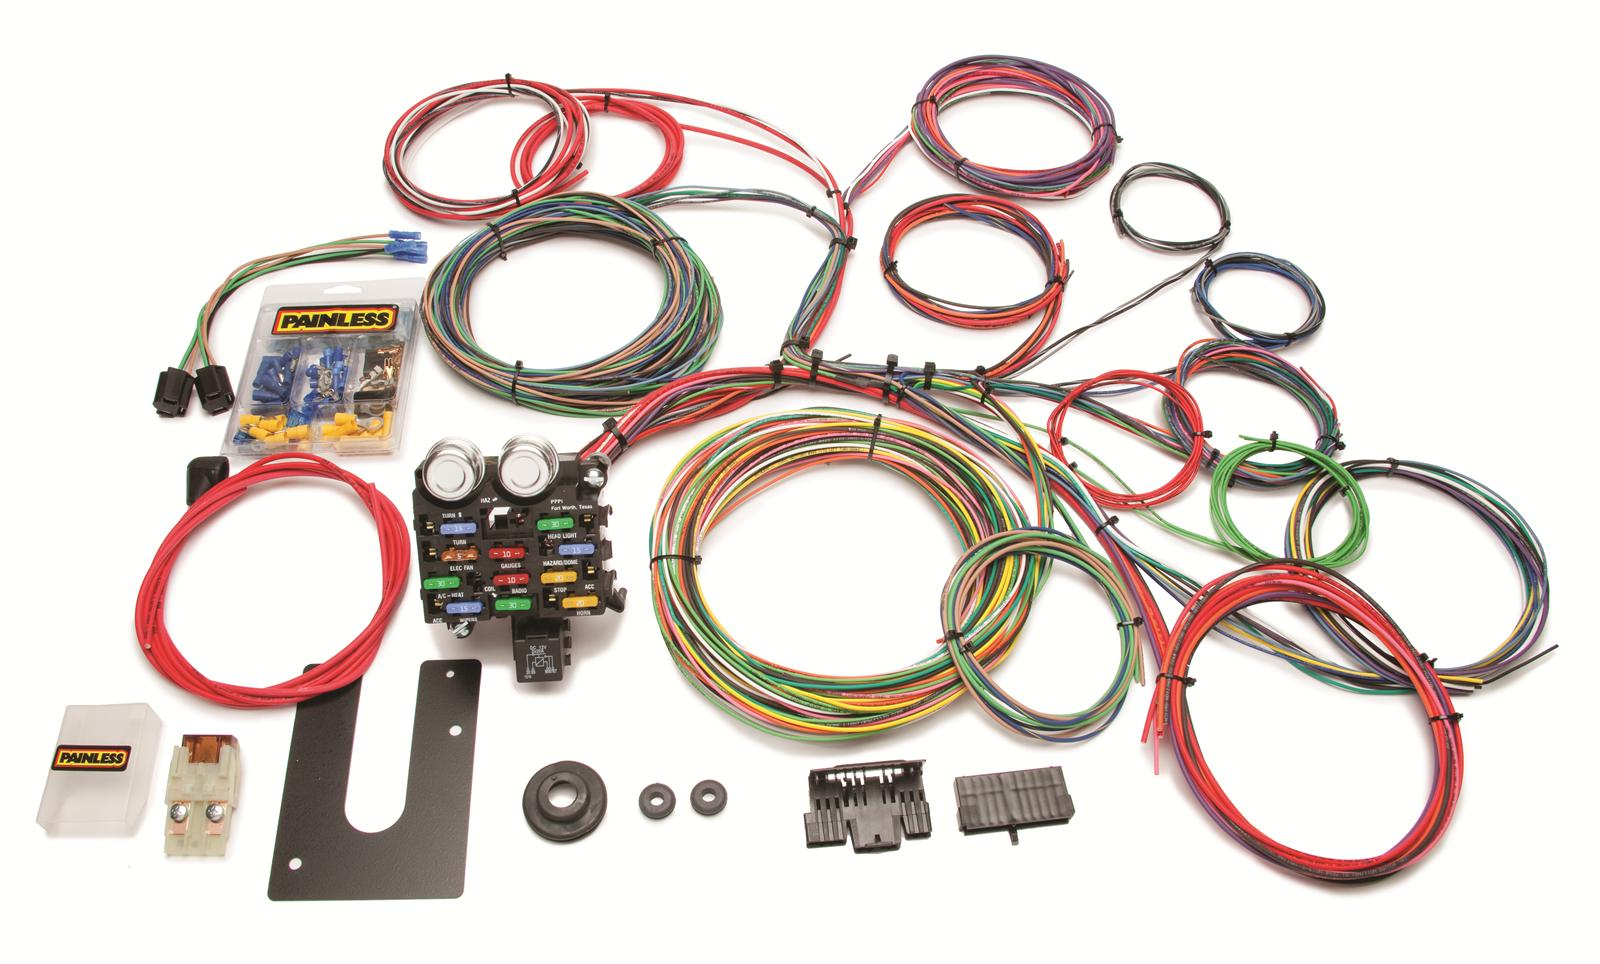 69 Chevelle Wiring Harness Painless Library Diagram 67 72 Chevy Performance 21 Circuit Universal Harnesses 10102 Free Shipping On Orders Over 49 At